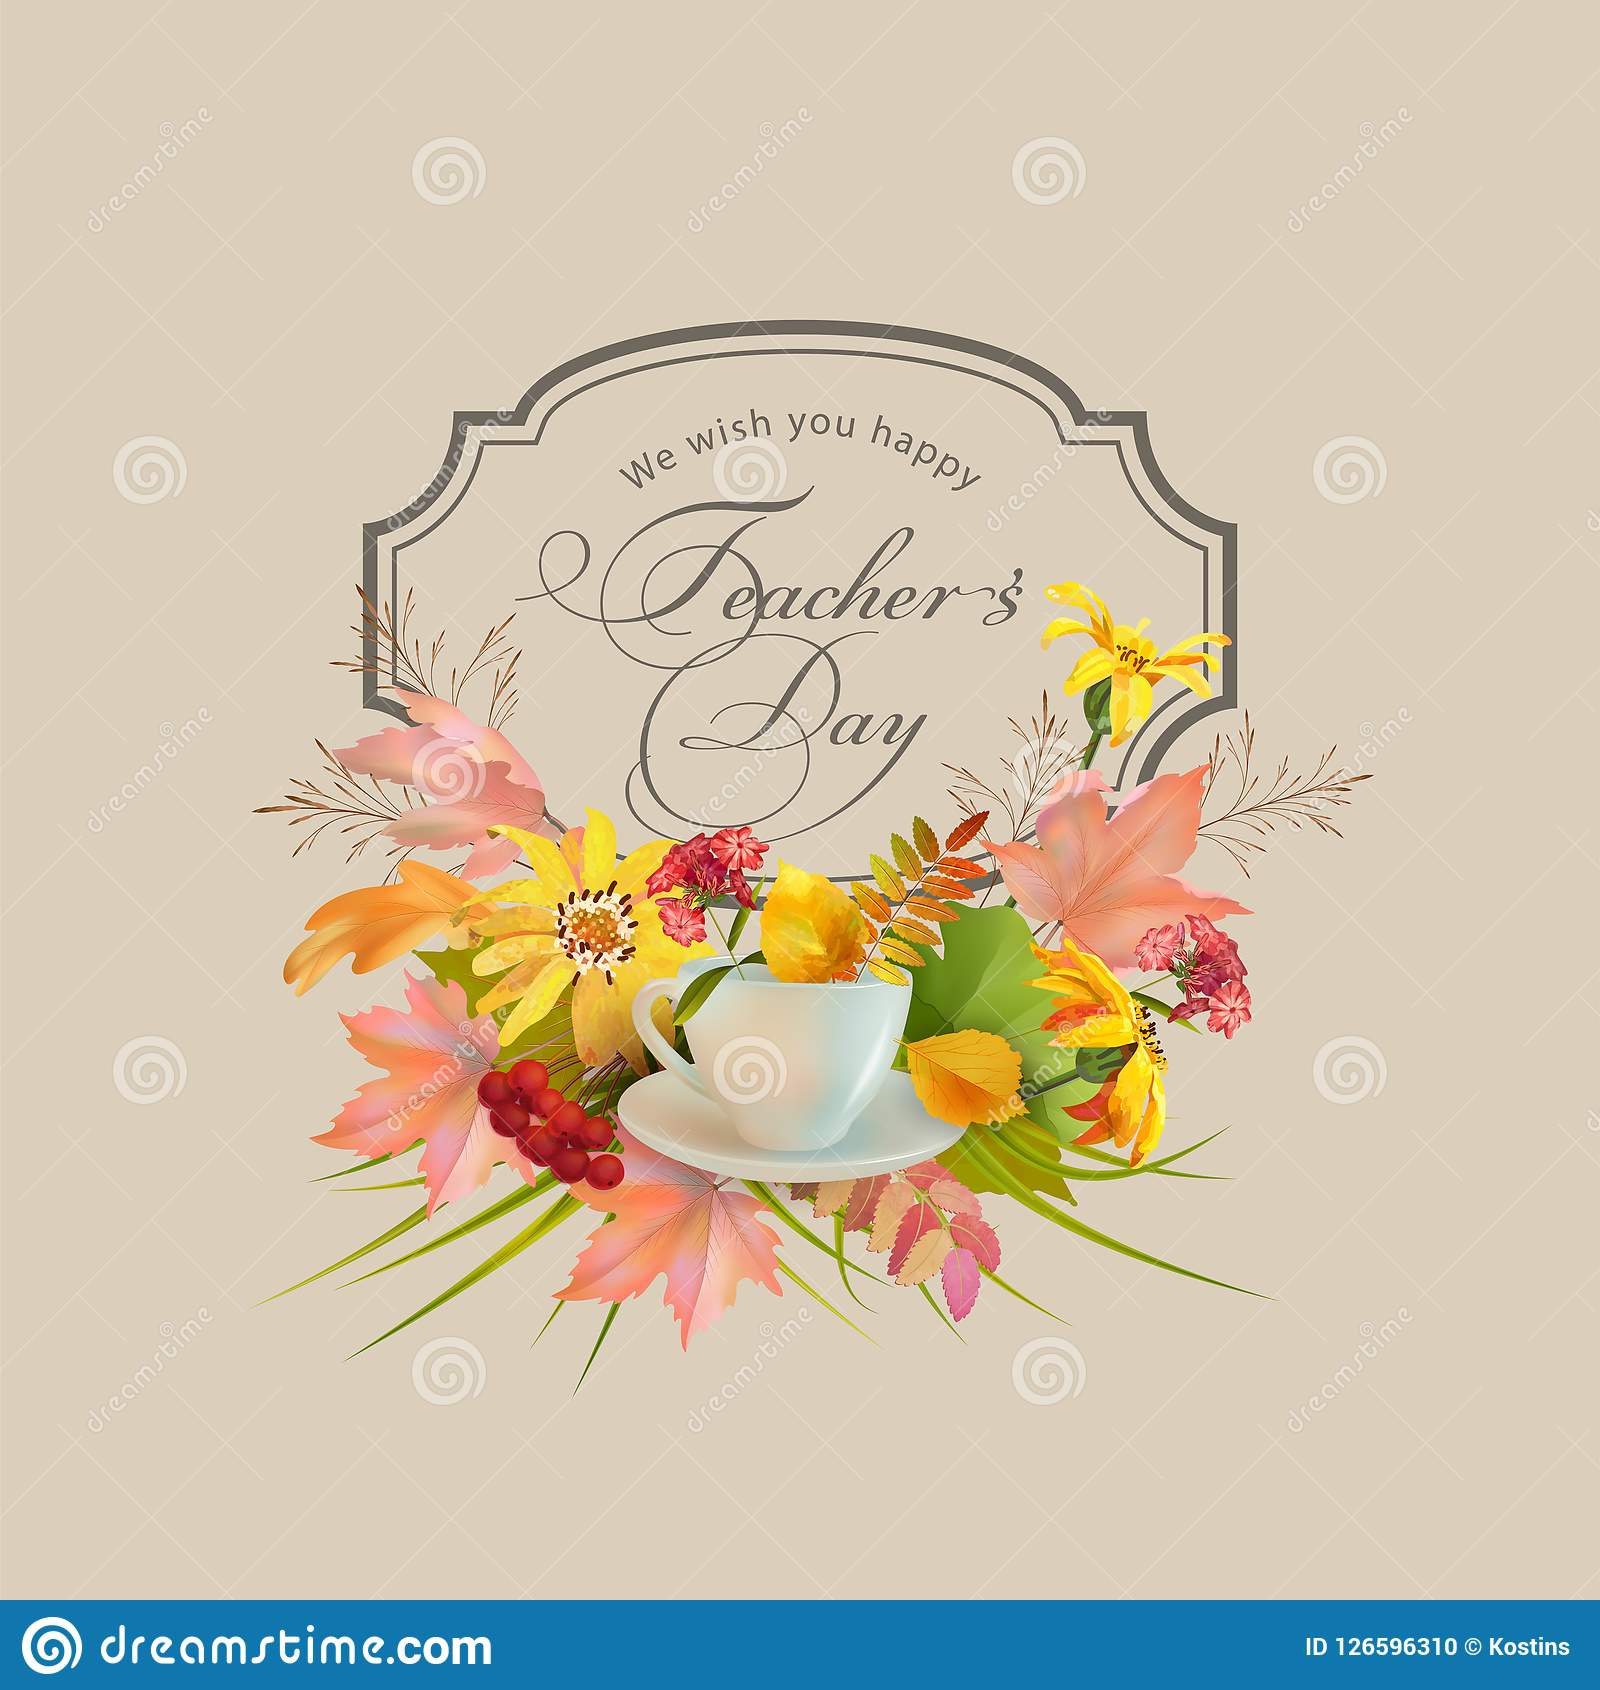 Teachers day greeting card stock vector illustration of inscription teachers day greeting card with autumn leaves and flowers happy teachers day inscription m4hsunfo